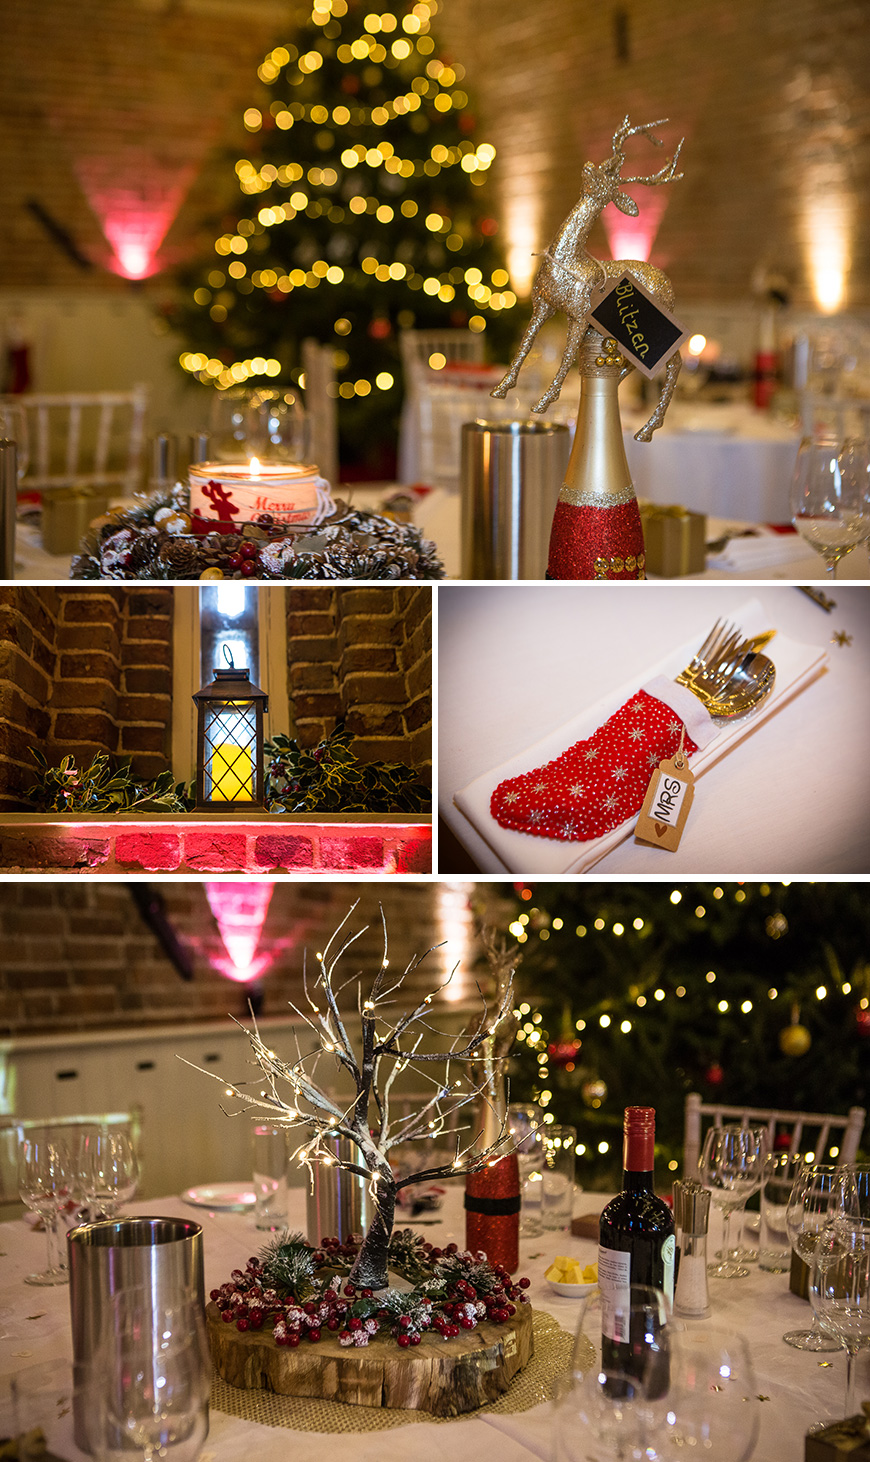 Real Wedding - Rebecca and James' Festive Winter Wedding at Manor Mews | CHWV